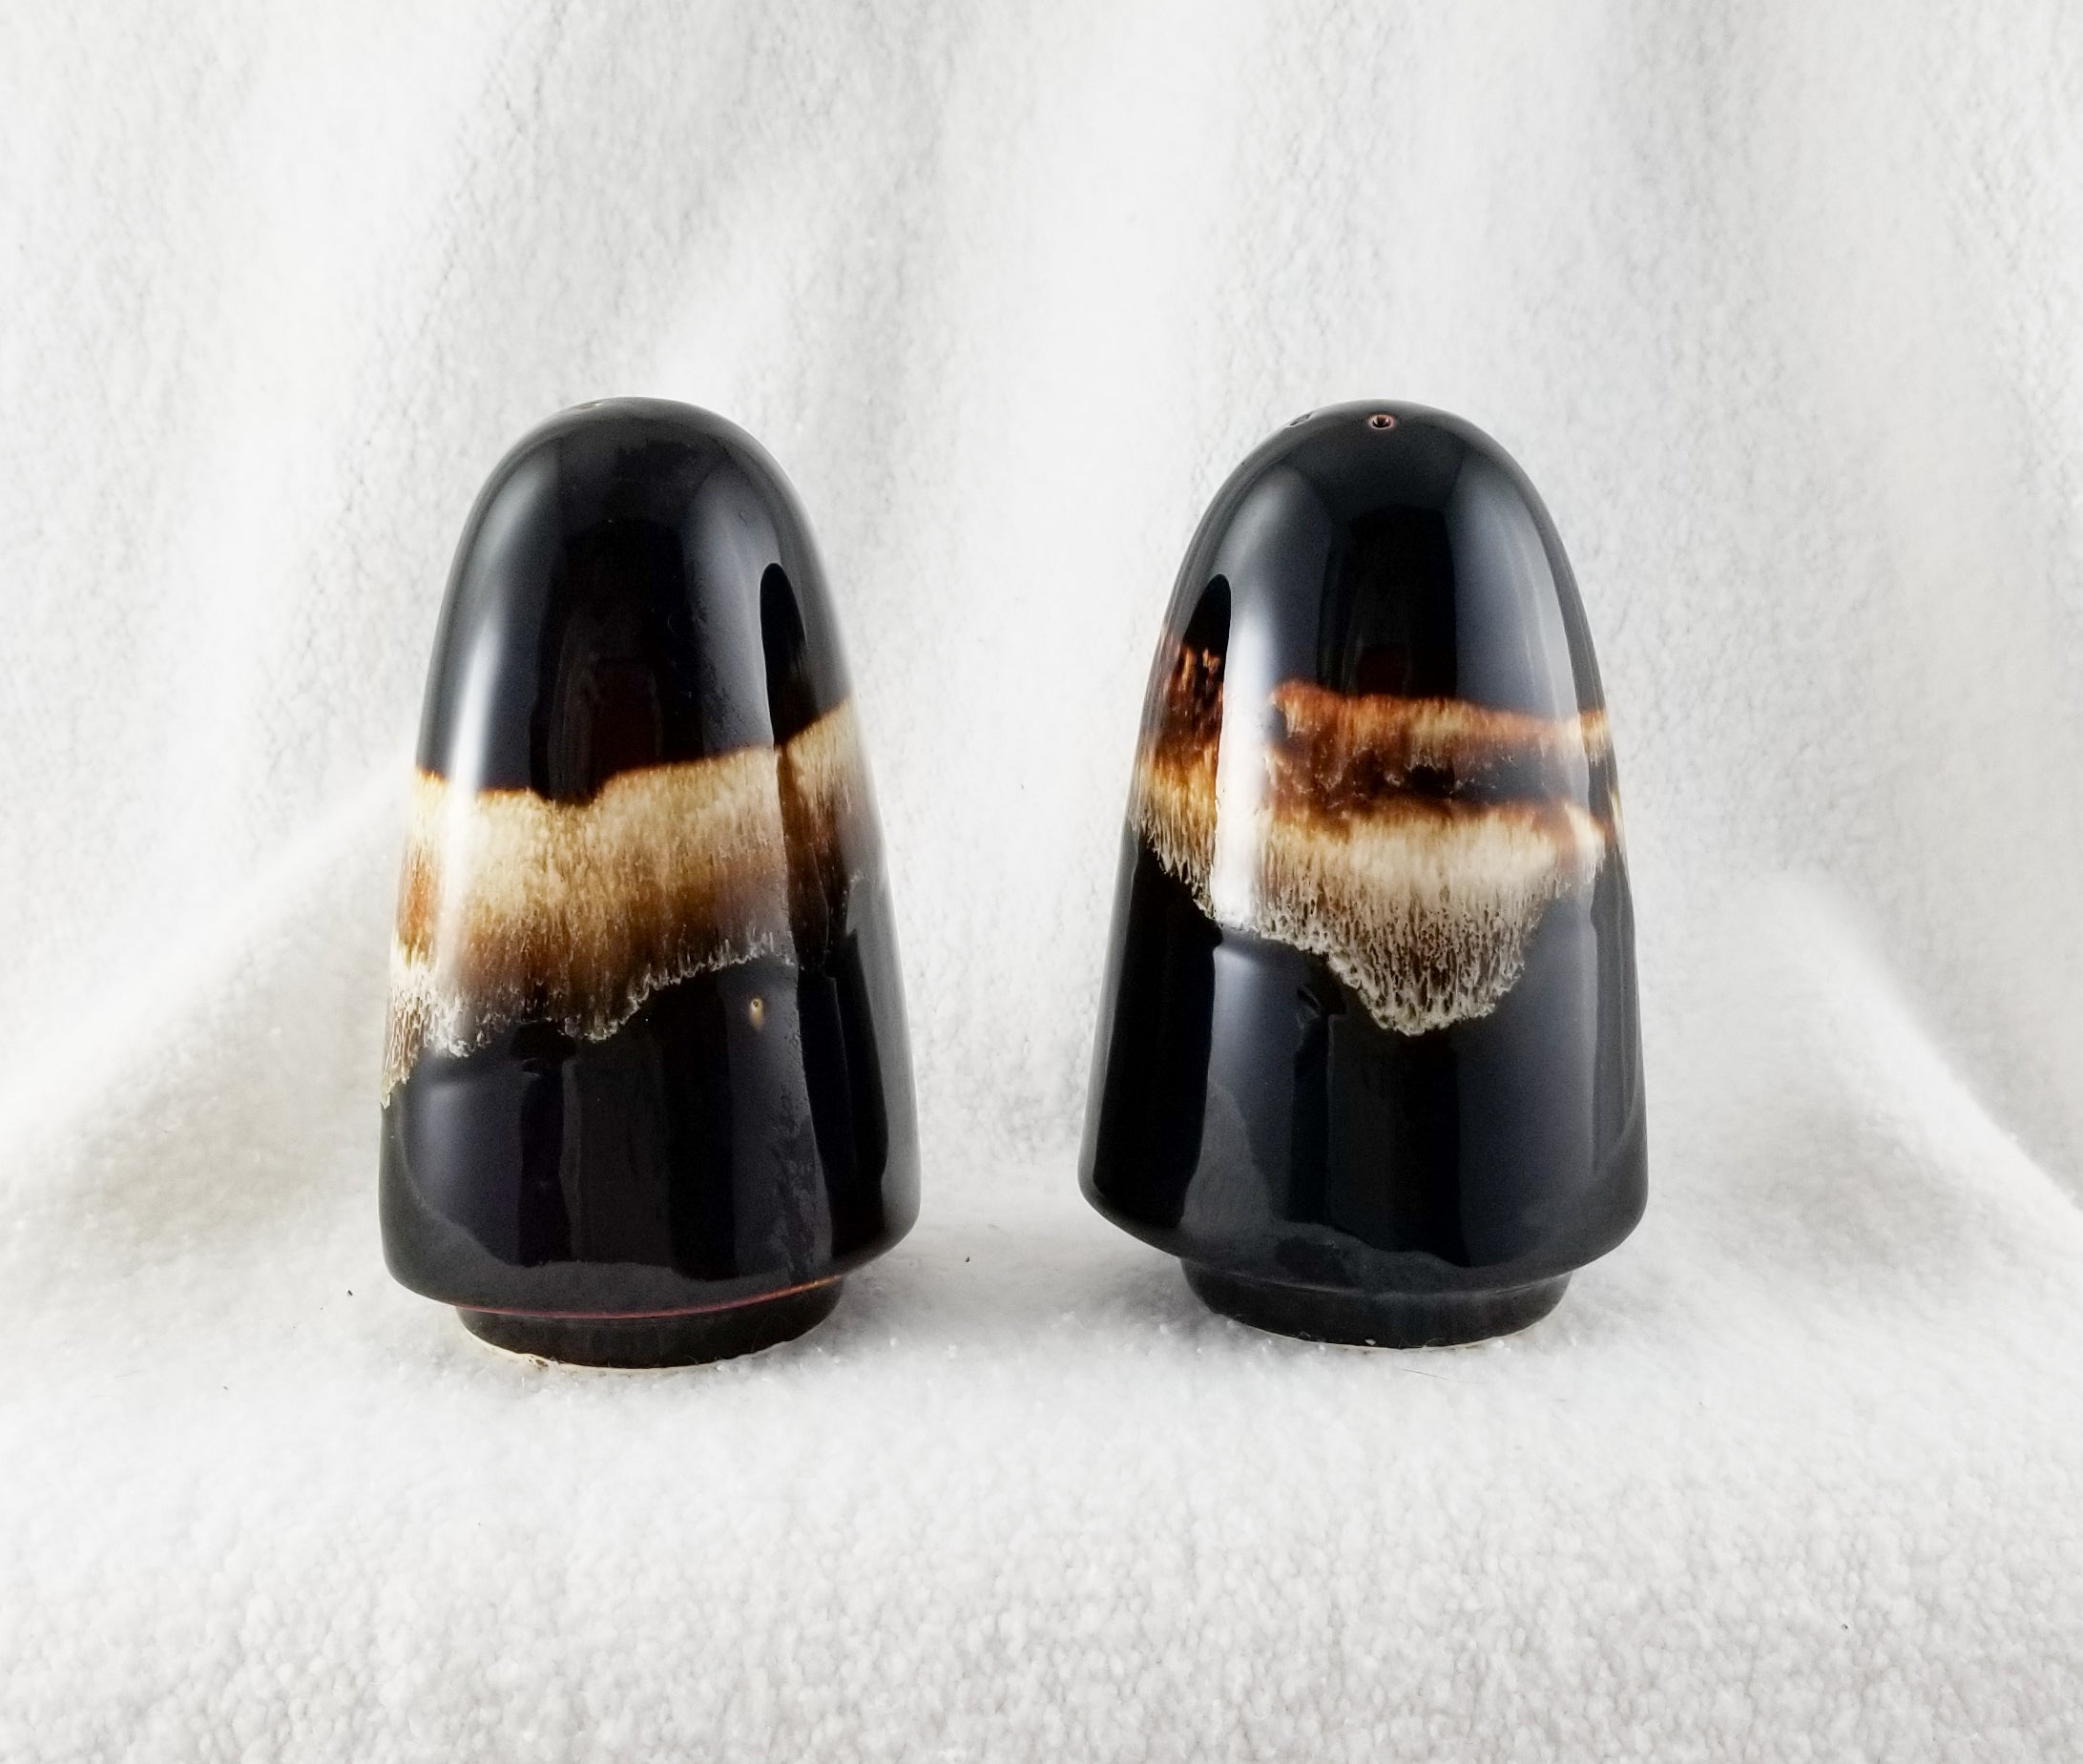 Vintage Discontinued Salt and Pepper set in Gourmet Brown Drip by Pfaltzgraff (USA)